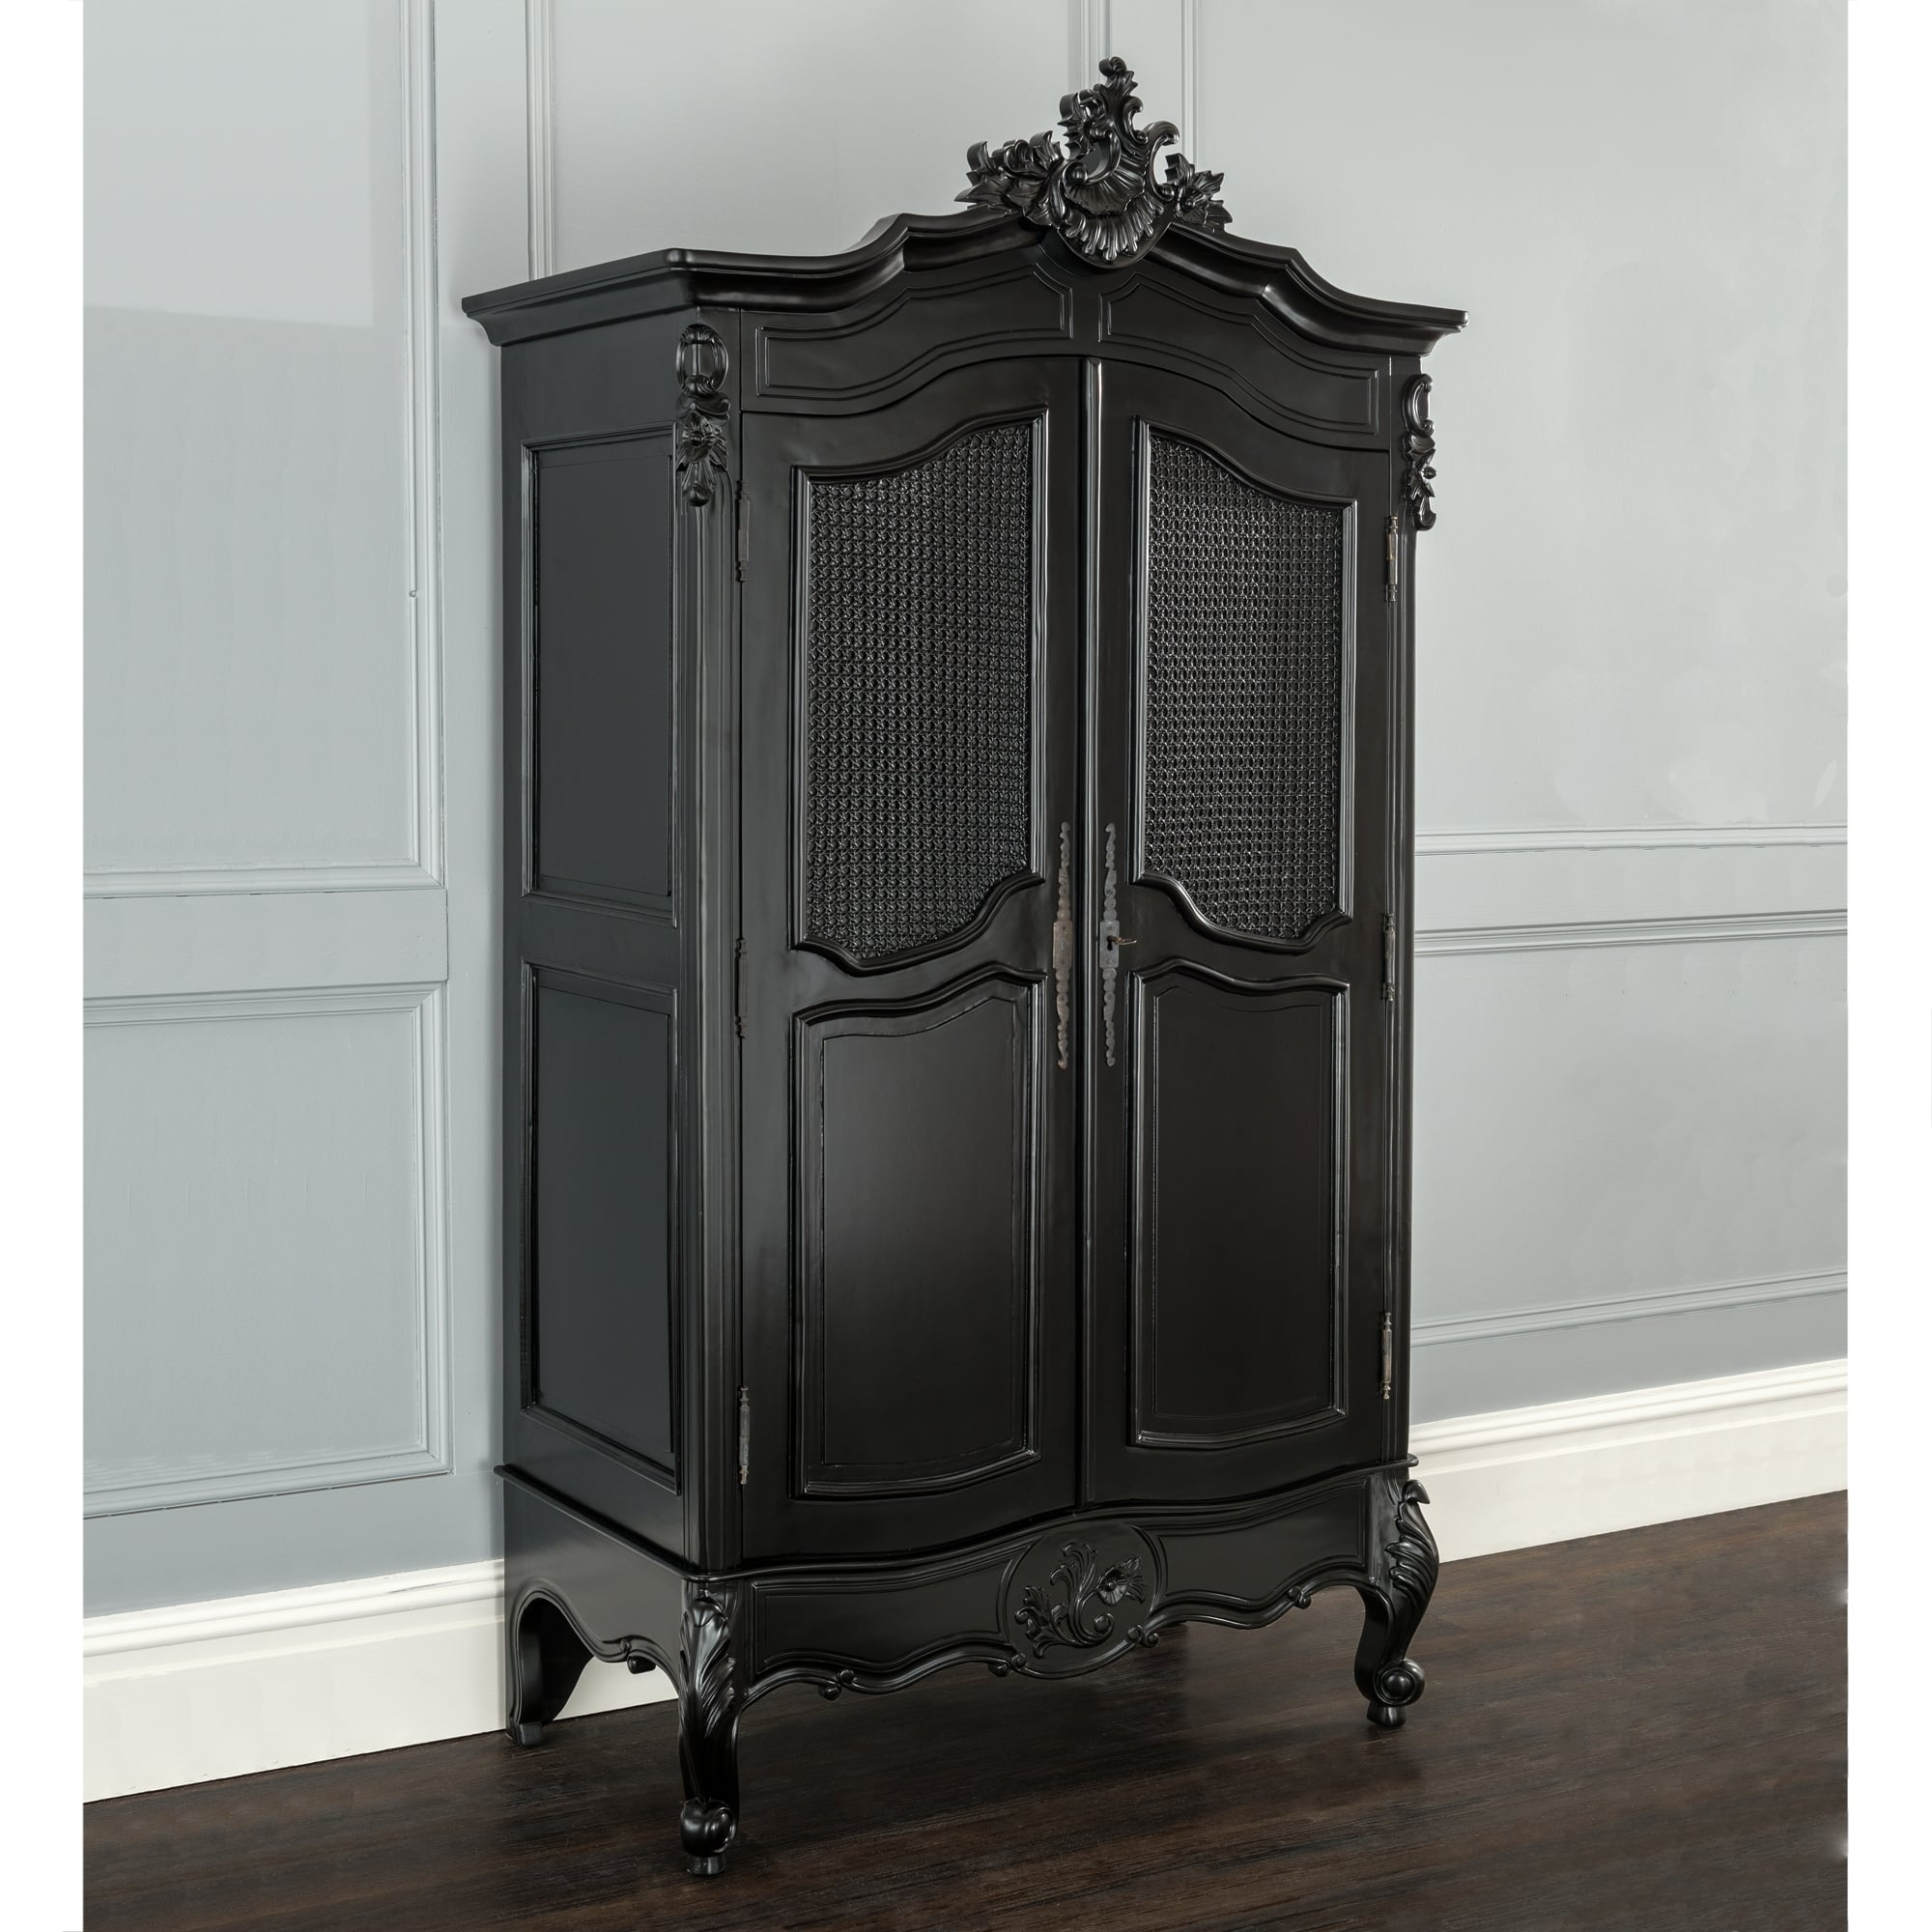 la rochelle antique french wardrobe black painted furniture. Black Bedroom Furniture Sets. Home Design Ideas